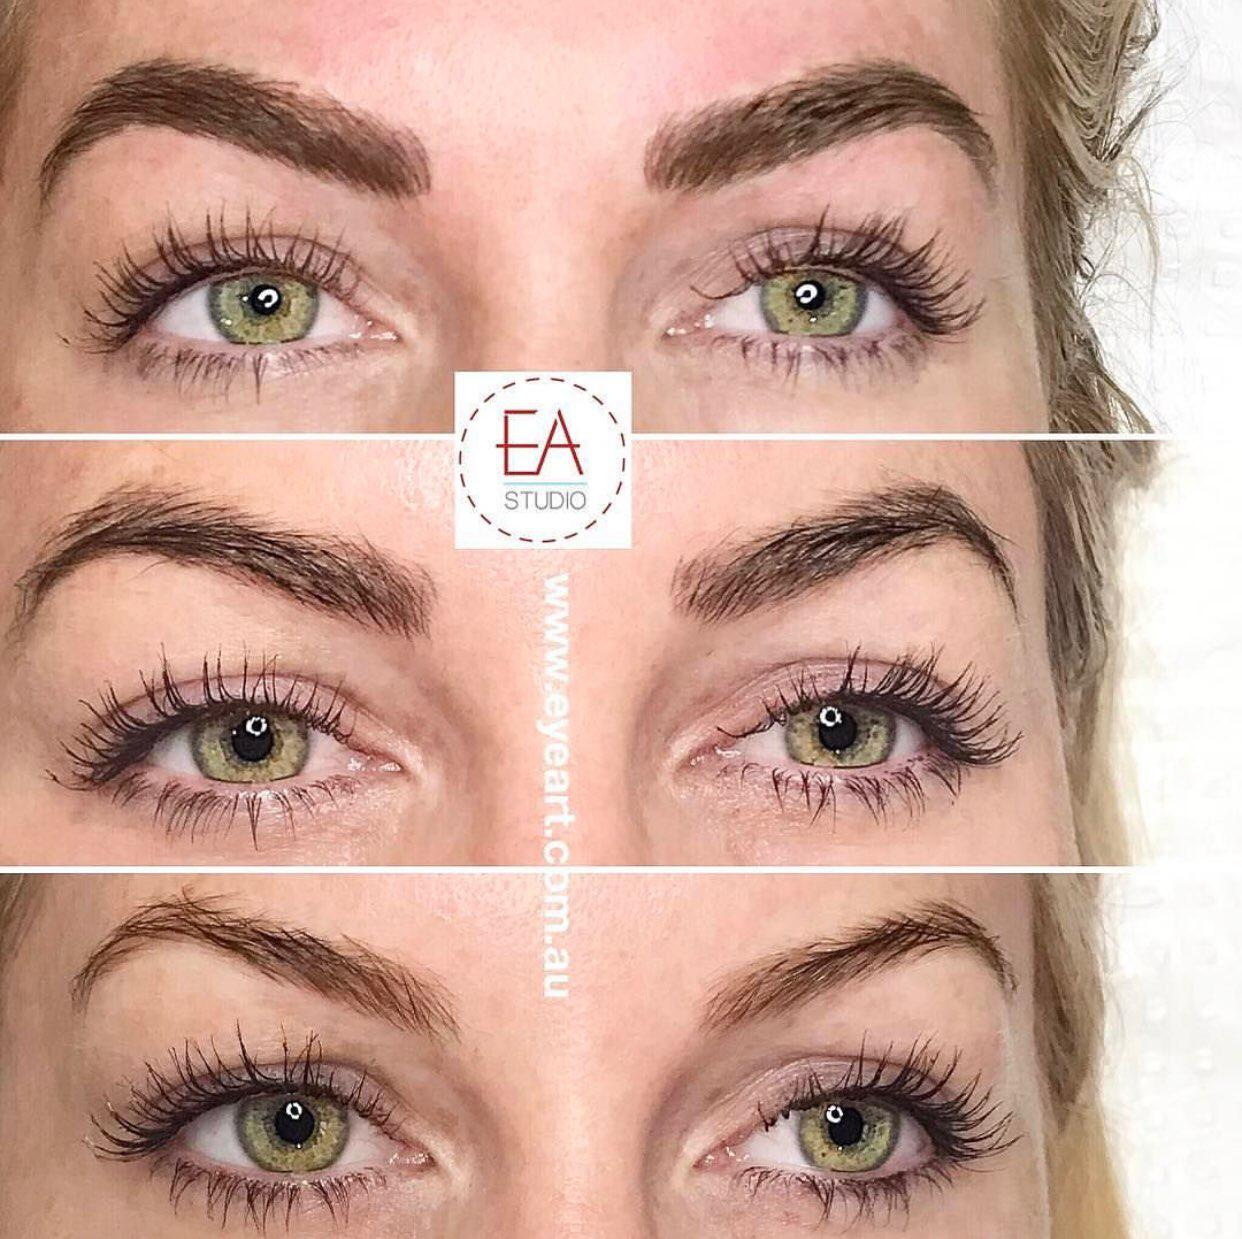 Eyebrow Tattoo Before and After Photos - Eyebrow Feathering Melbourne